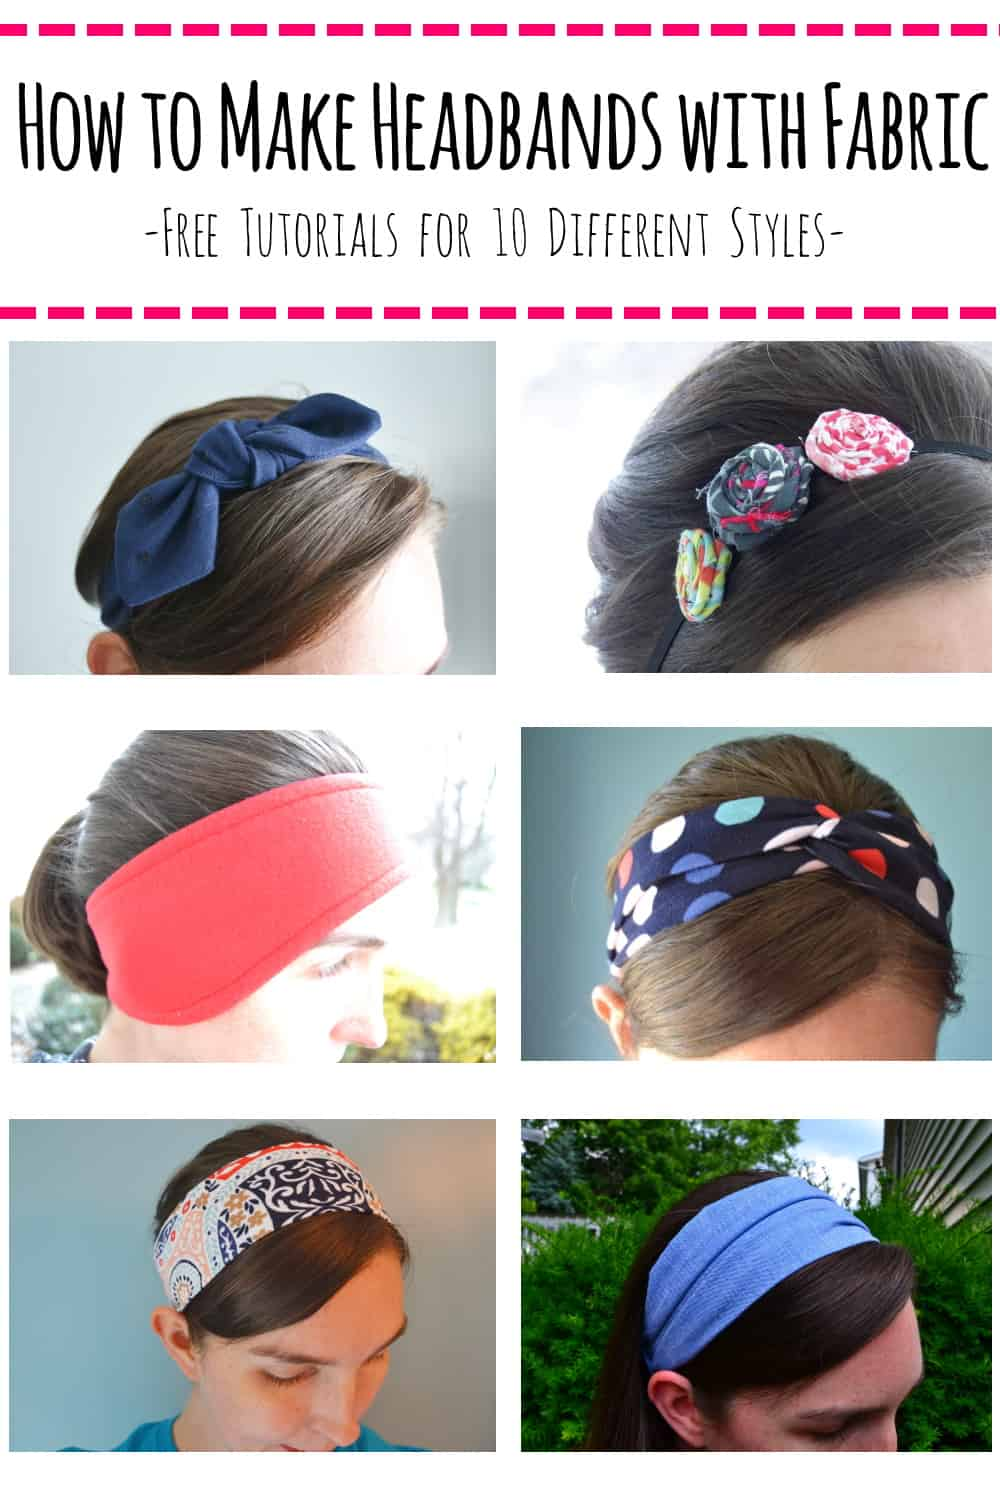 There are so many different ways you can make headbands.  Check out this post to learn how to make headbands with fabric 10 different ways.